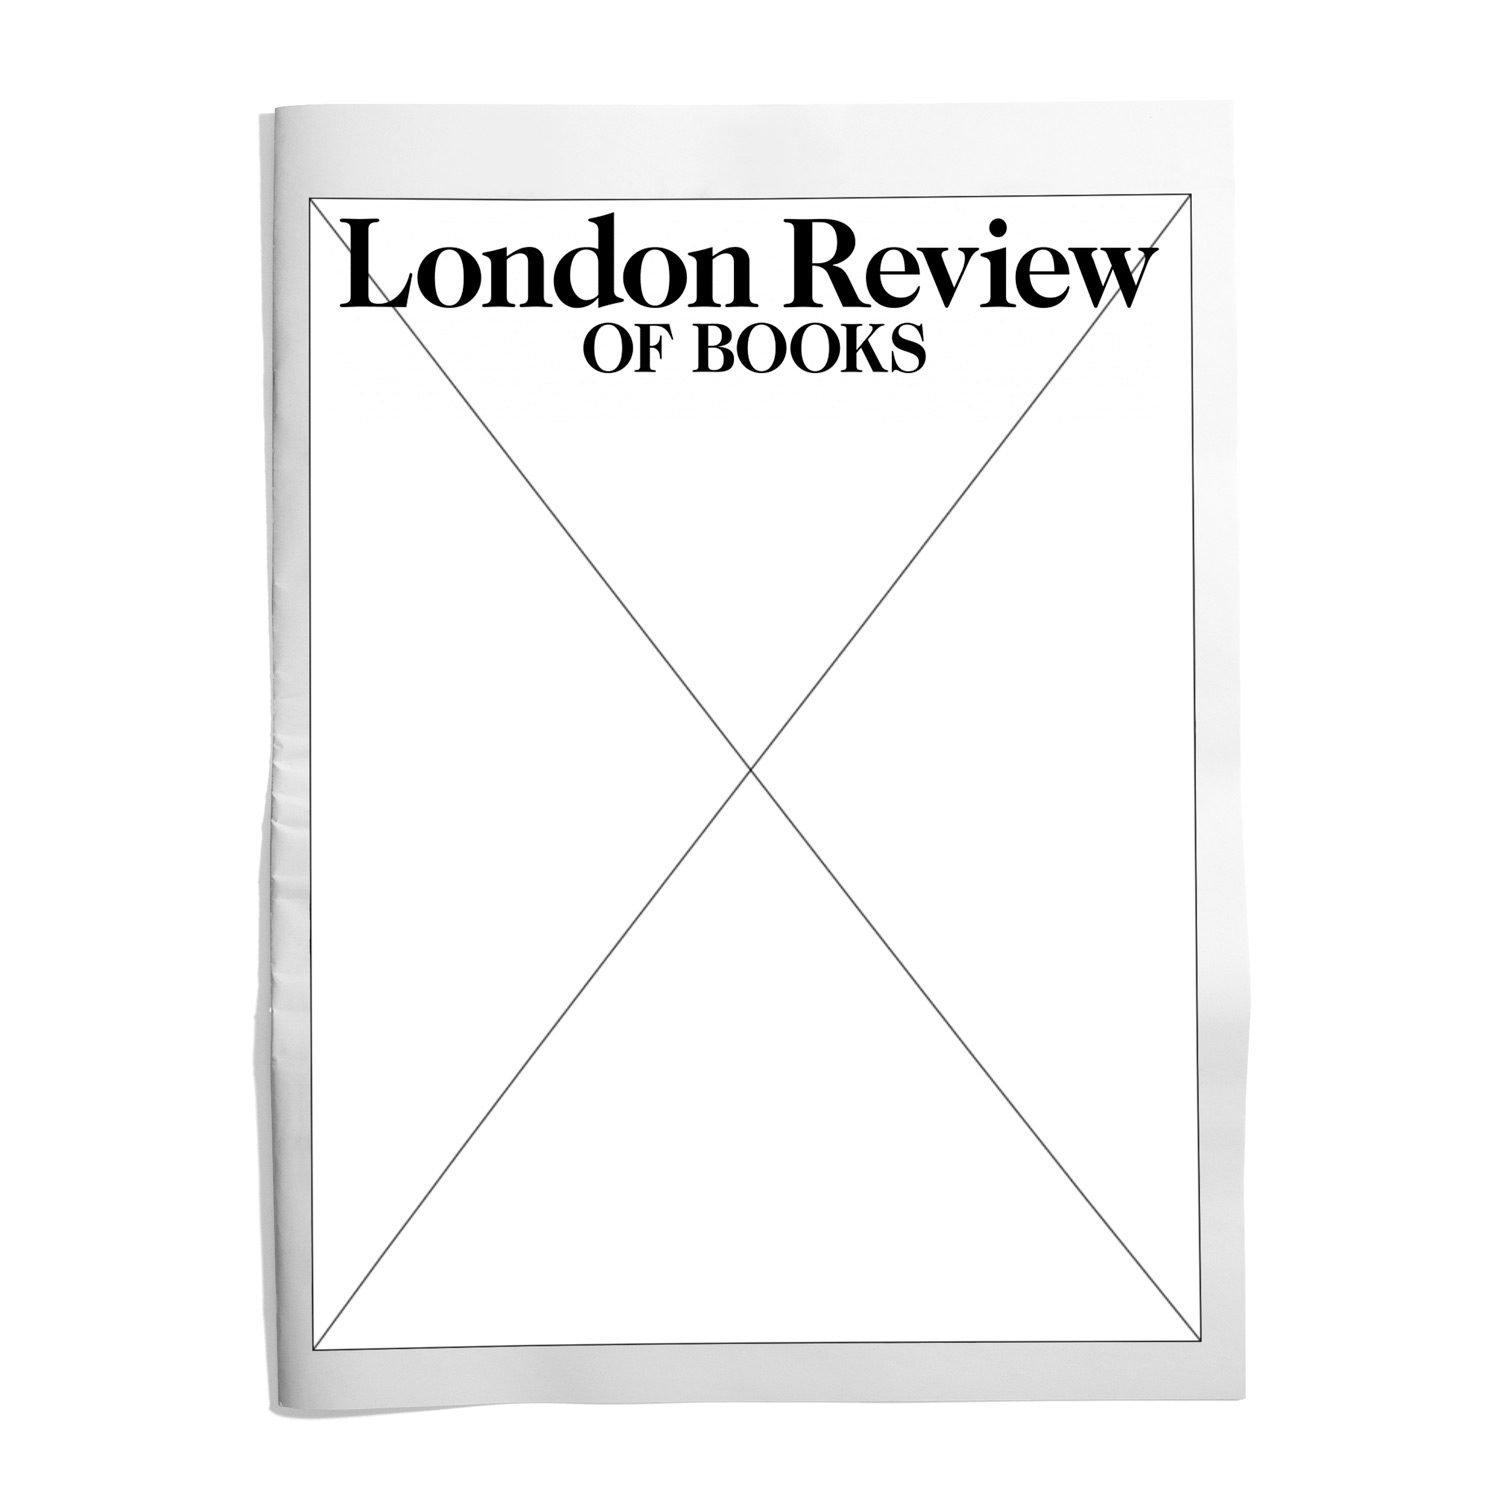 The London Review of Books 42/13 02.07.2020